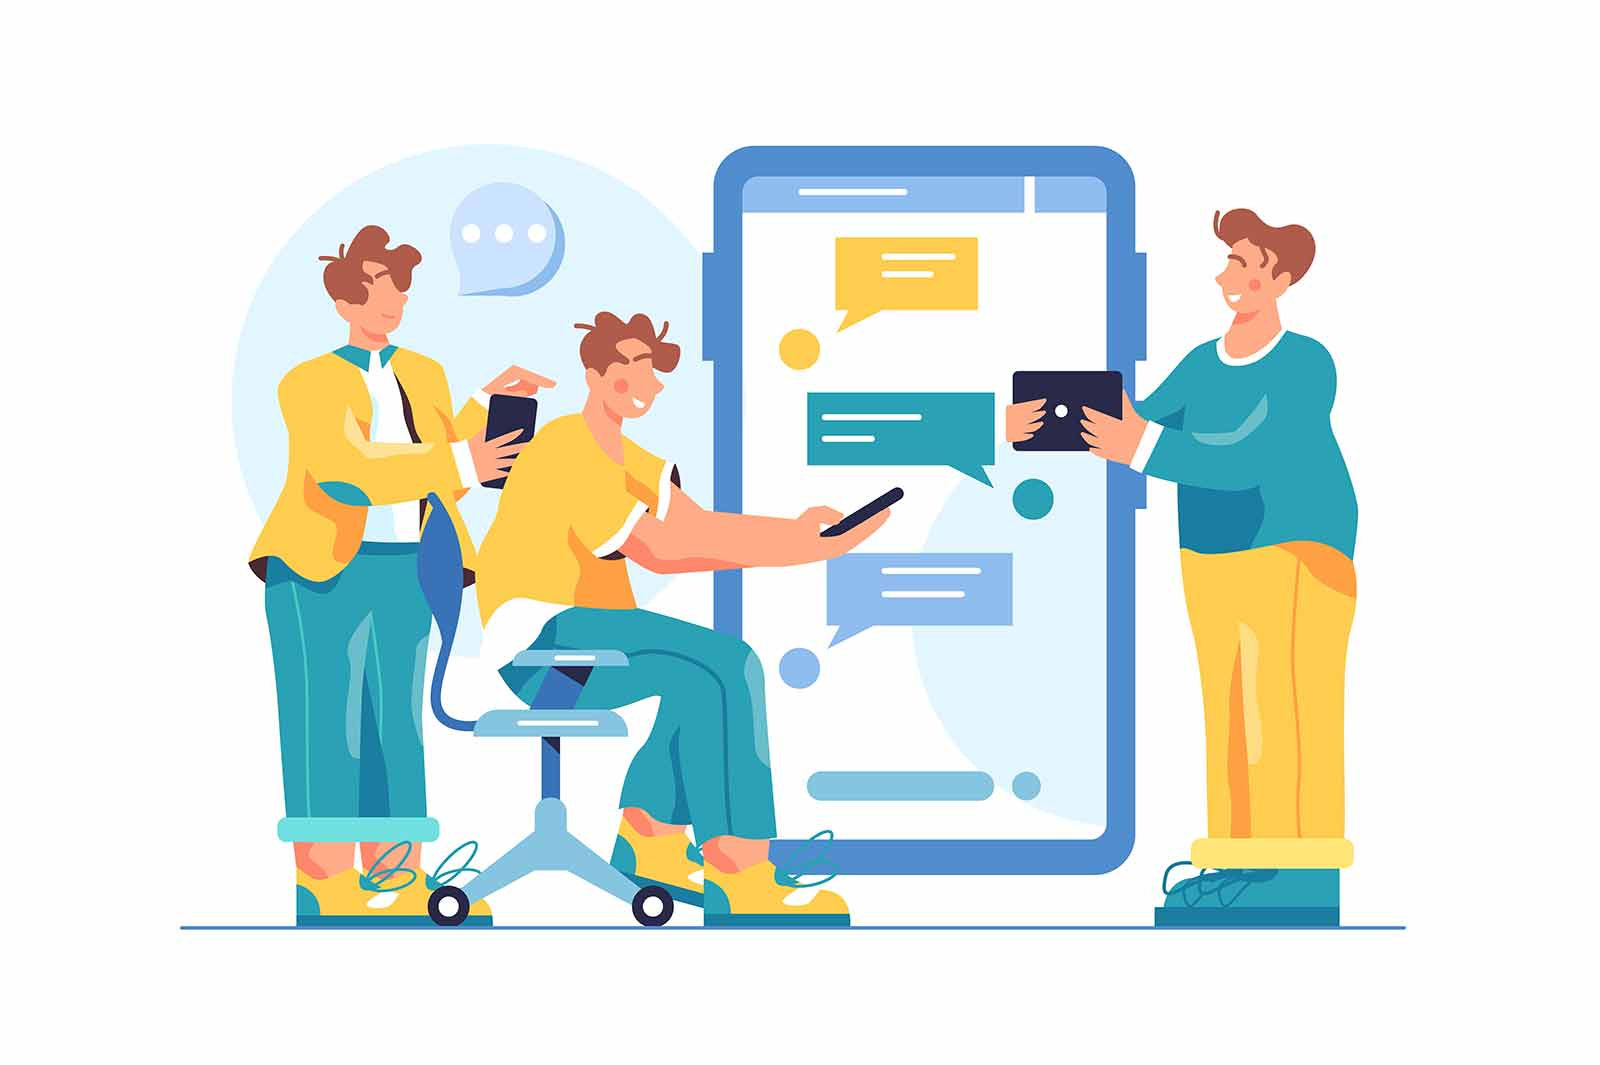 Group of men are engaged in correspondence in a general chat on a large mobile phone, man is sitting on chair with phone, isolated on a white background, flat vector illustration